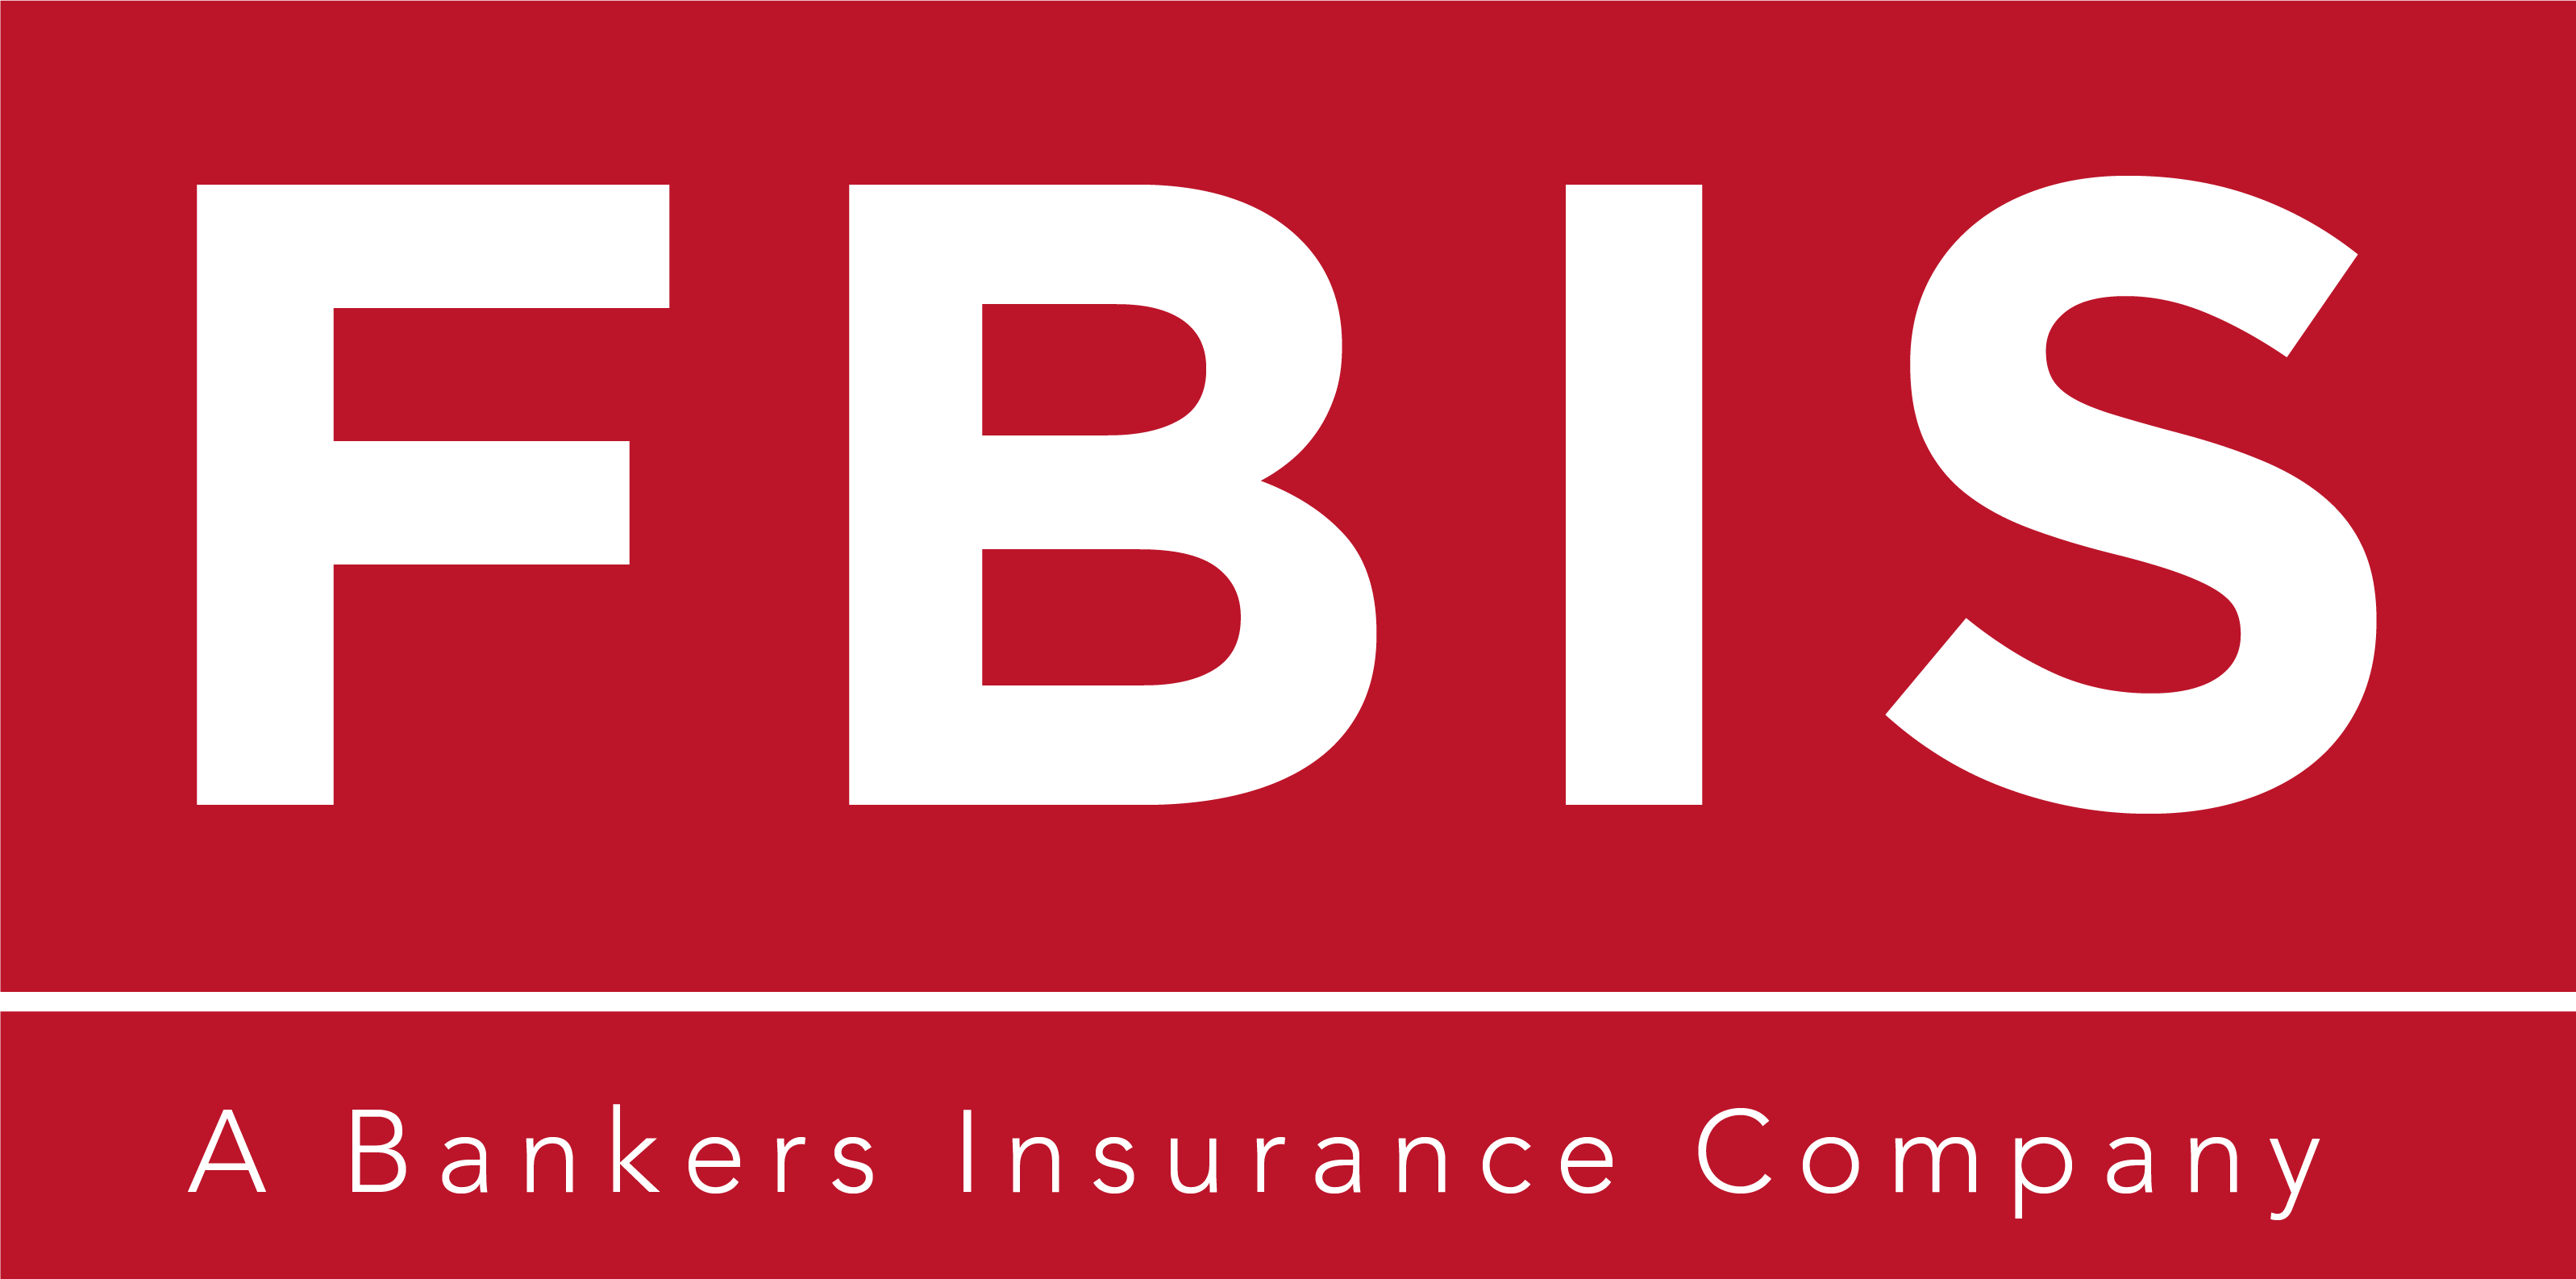 First Bank Insurance Services